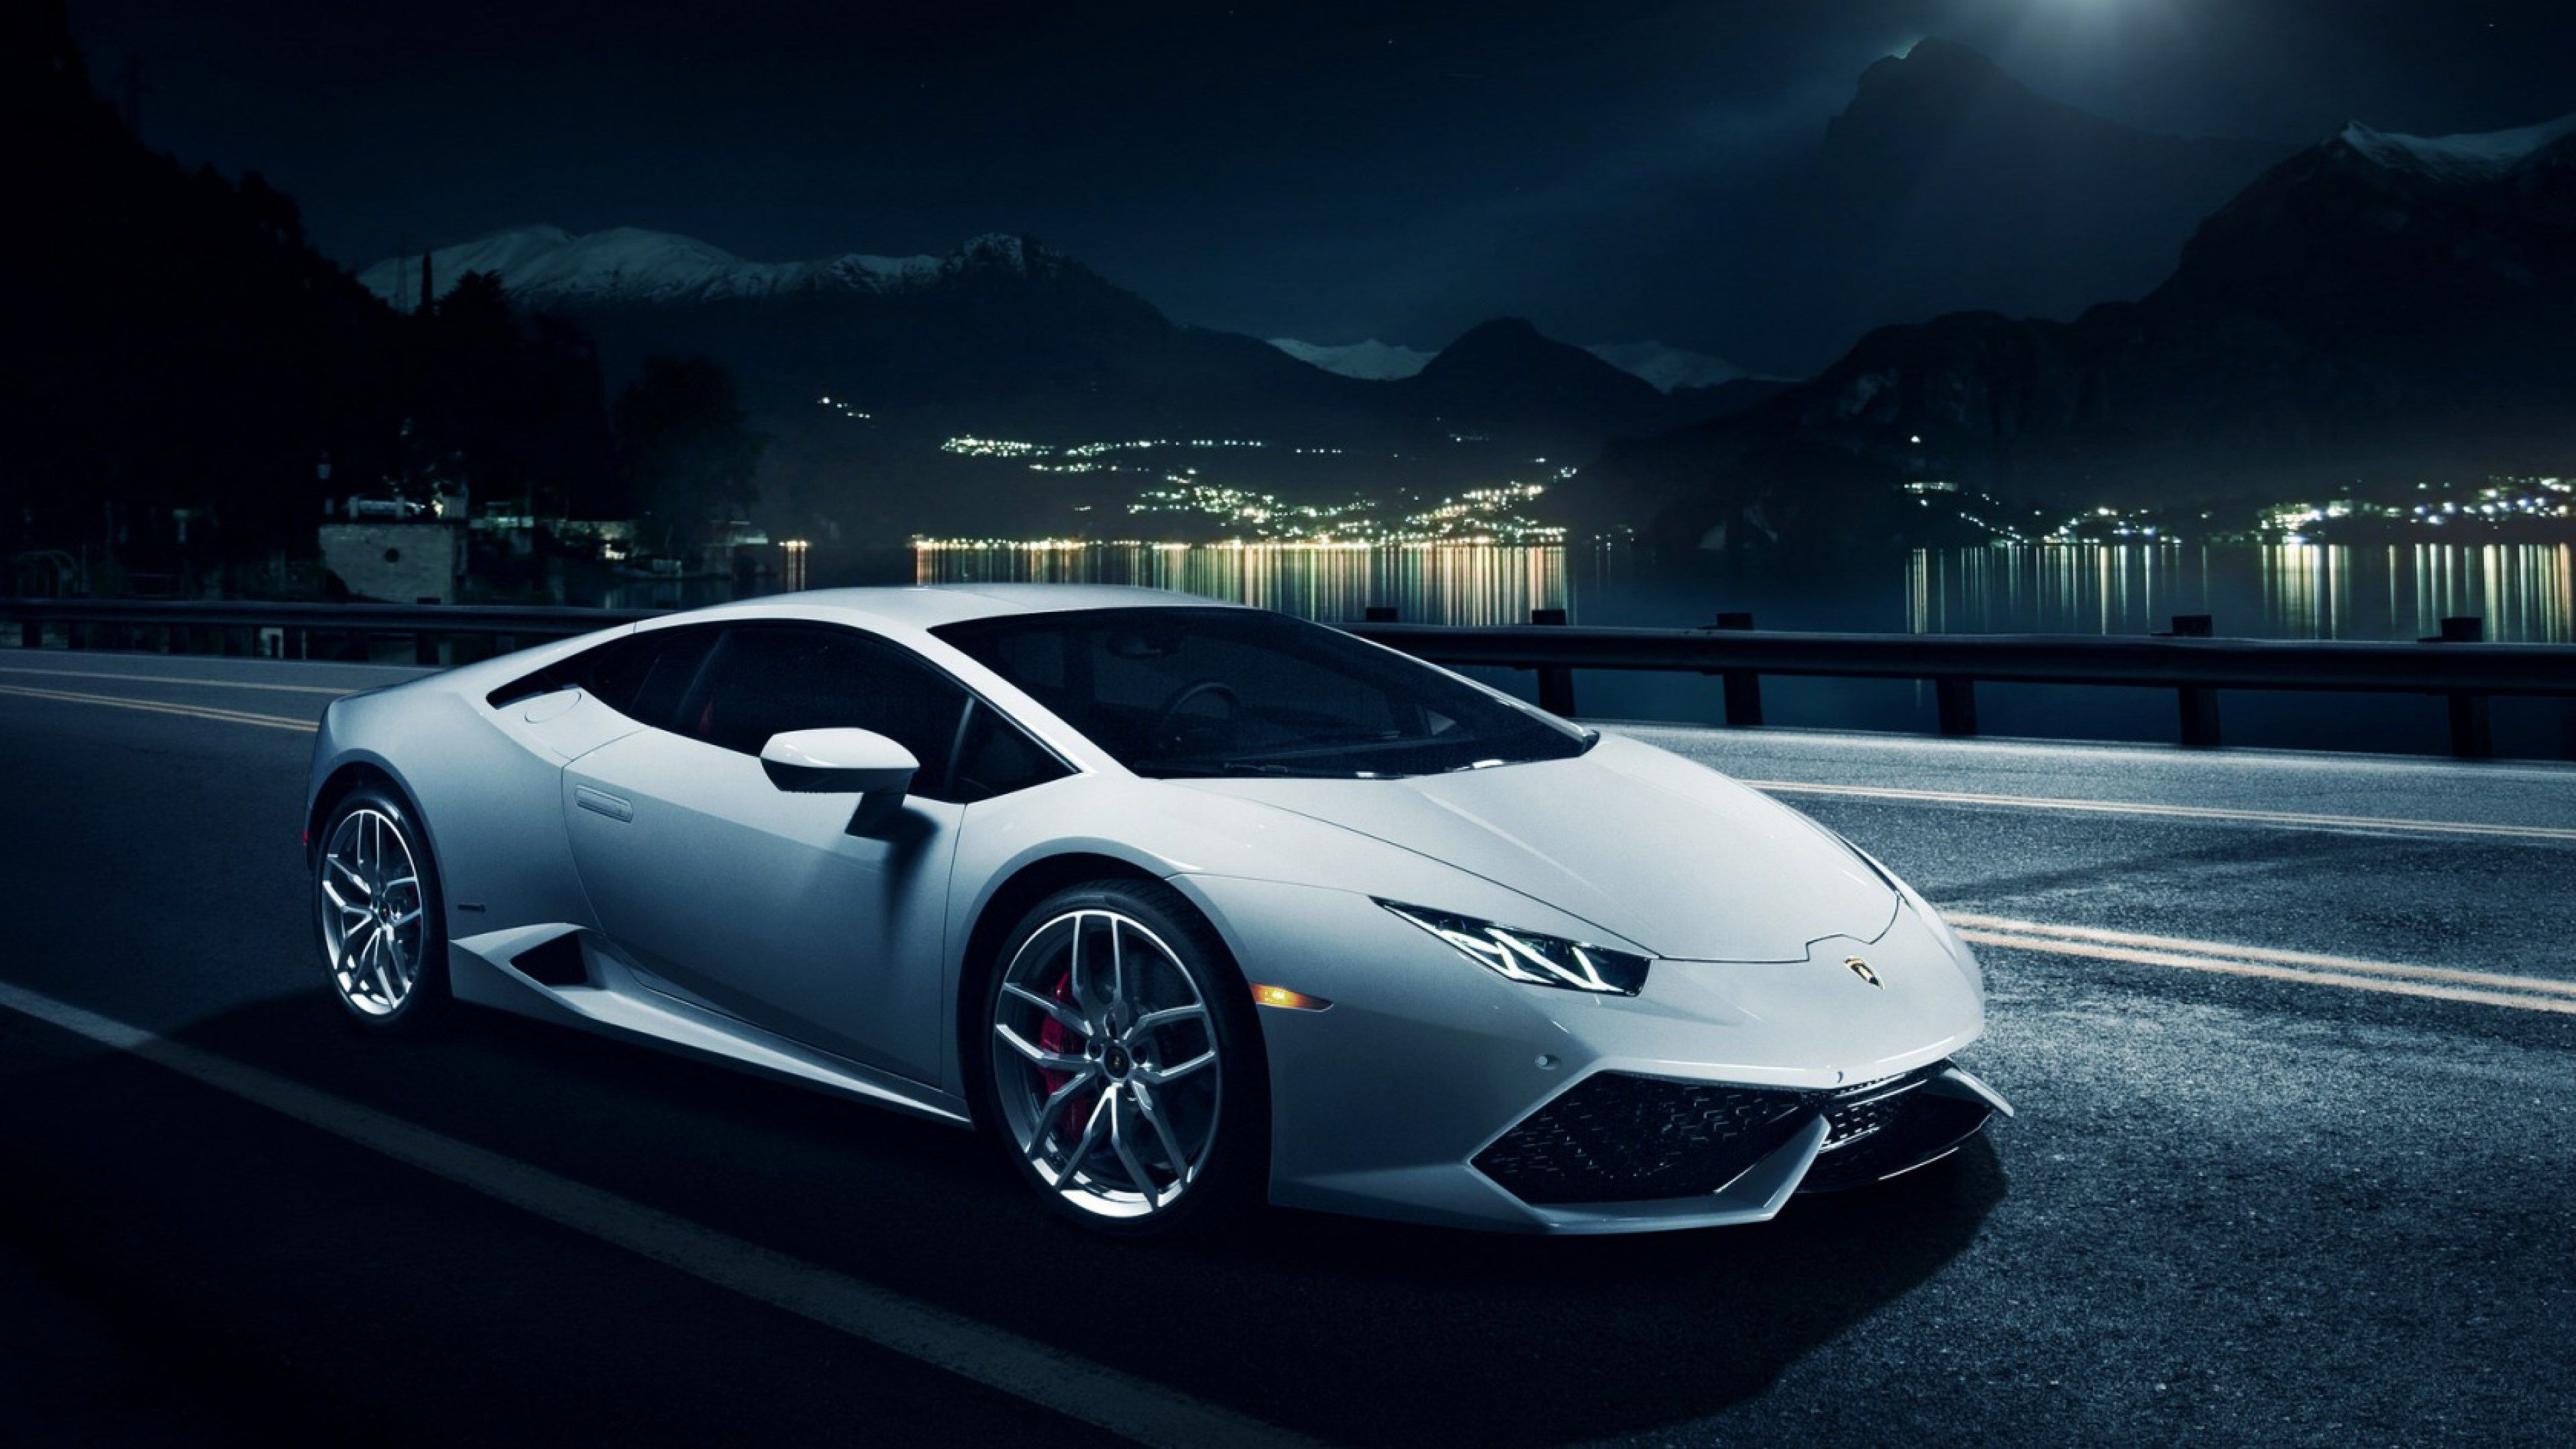 Lamborghini Huracan Full Hd Pictures 3840x2160 With Images